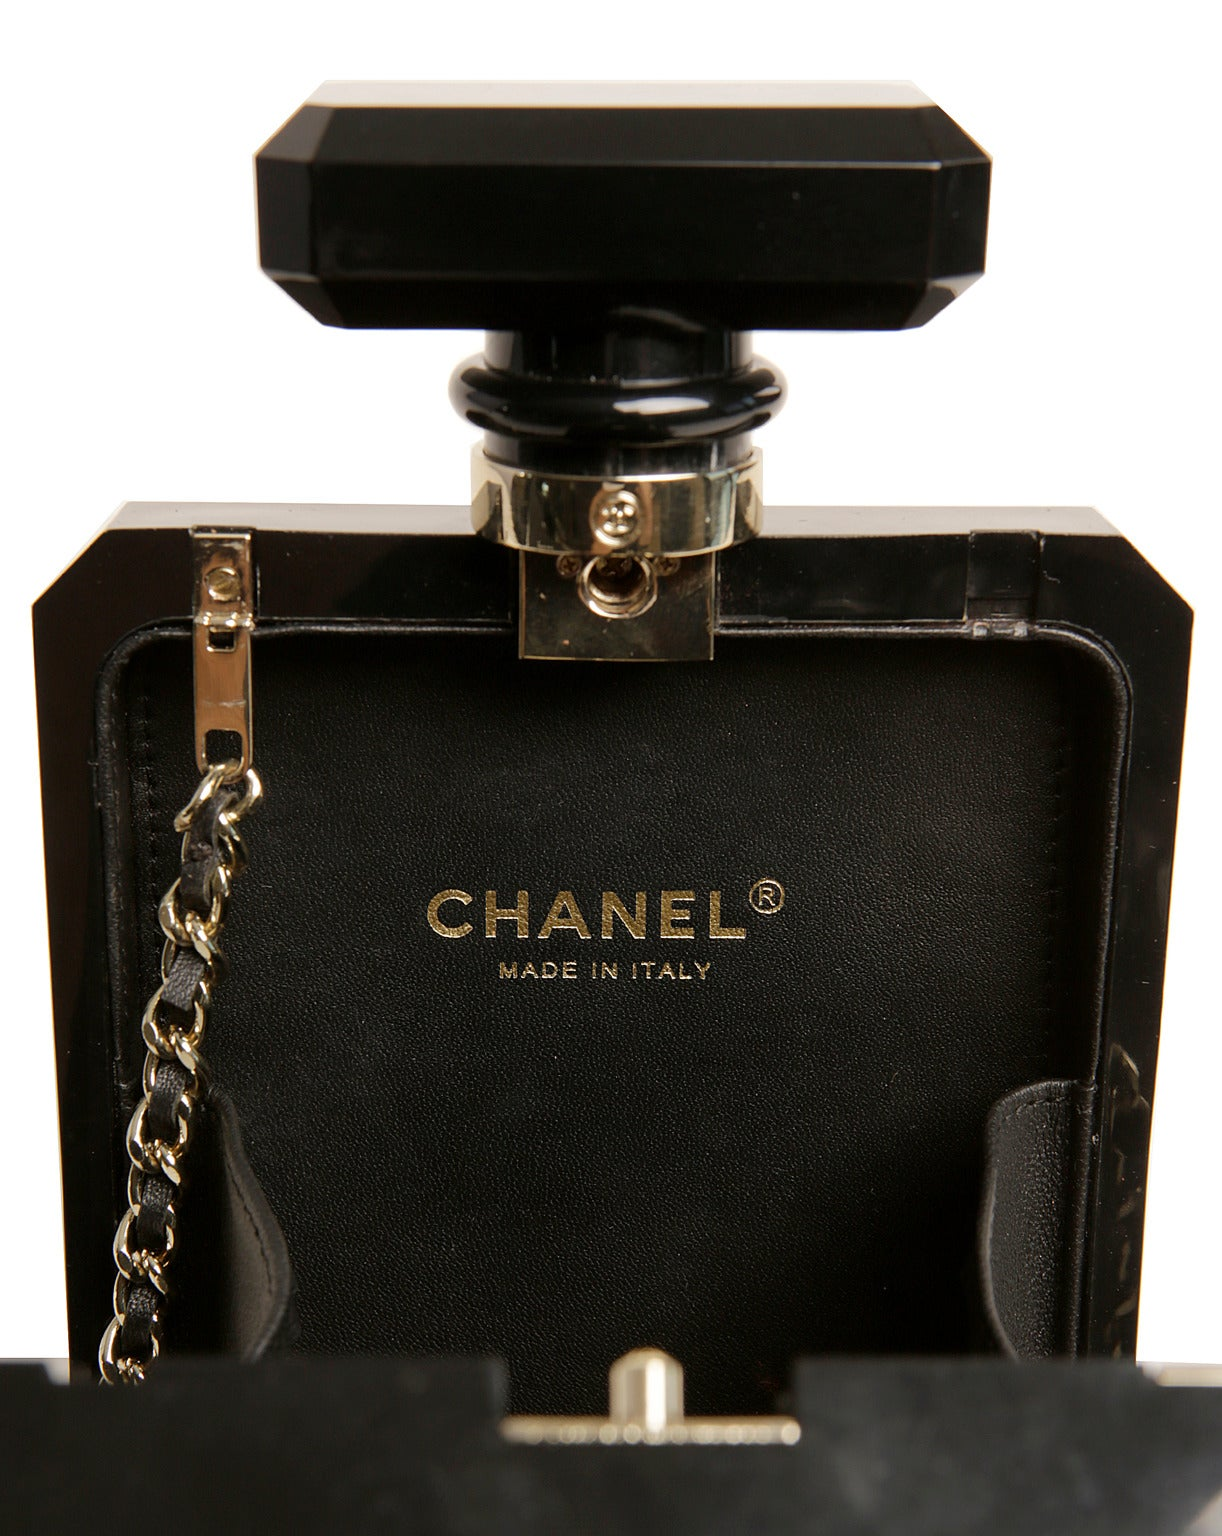 Chanel Black Perfume Bottle Bag- RARE 8